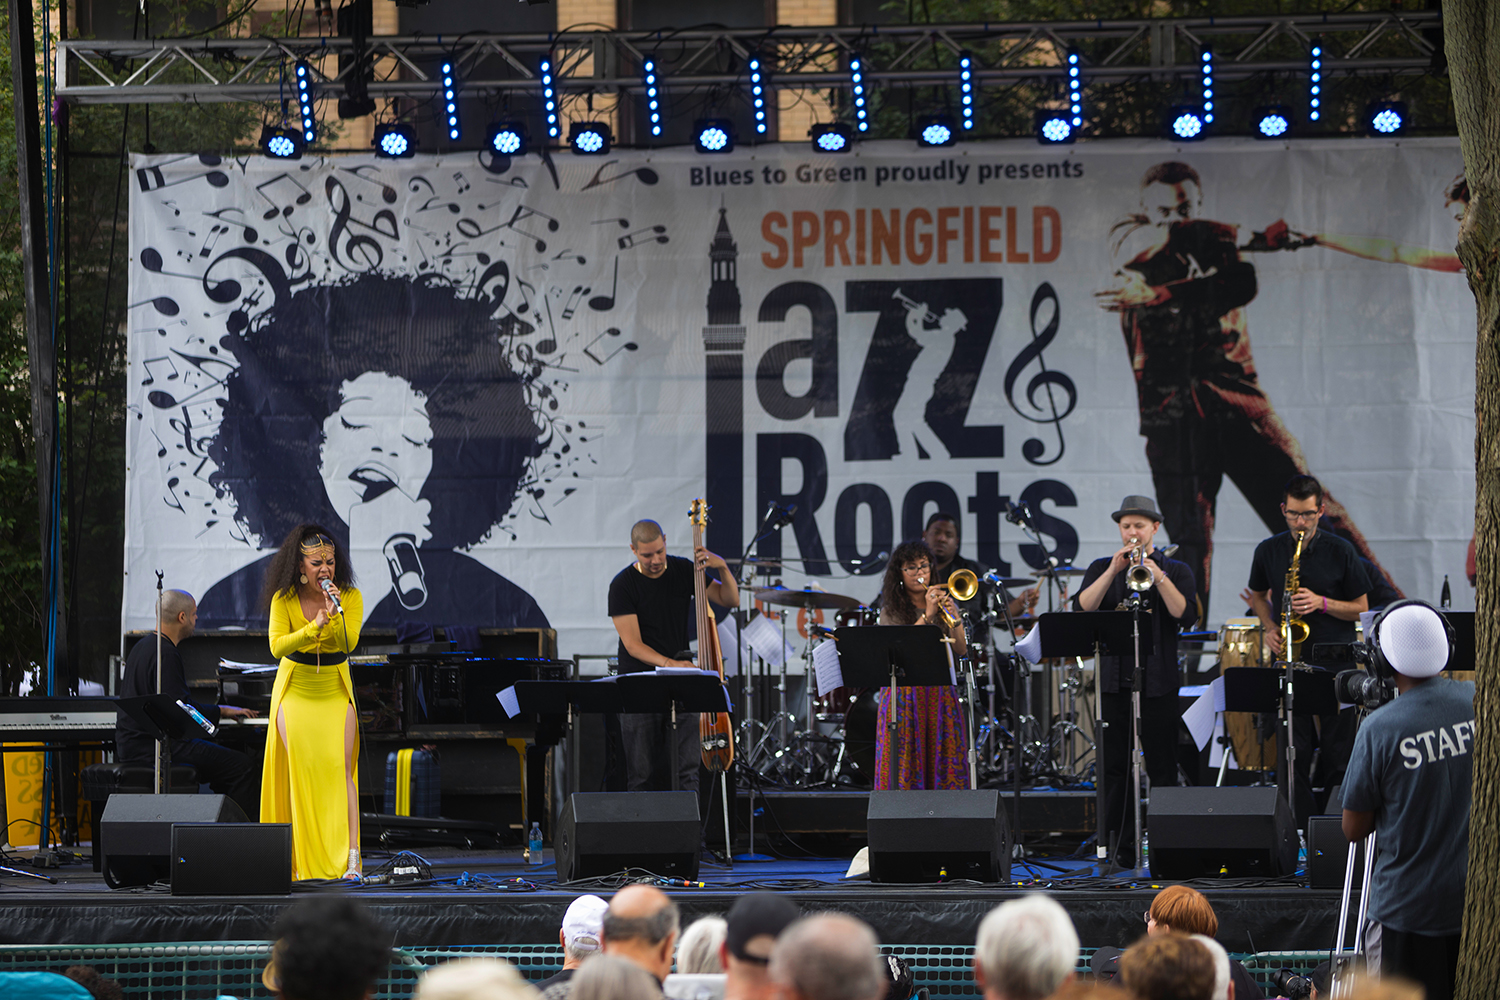 Springfield Jazz & Roots Festival